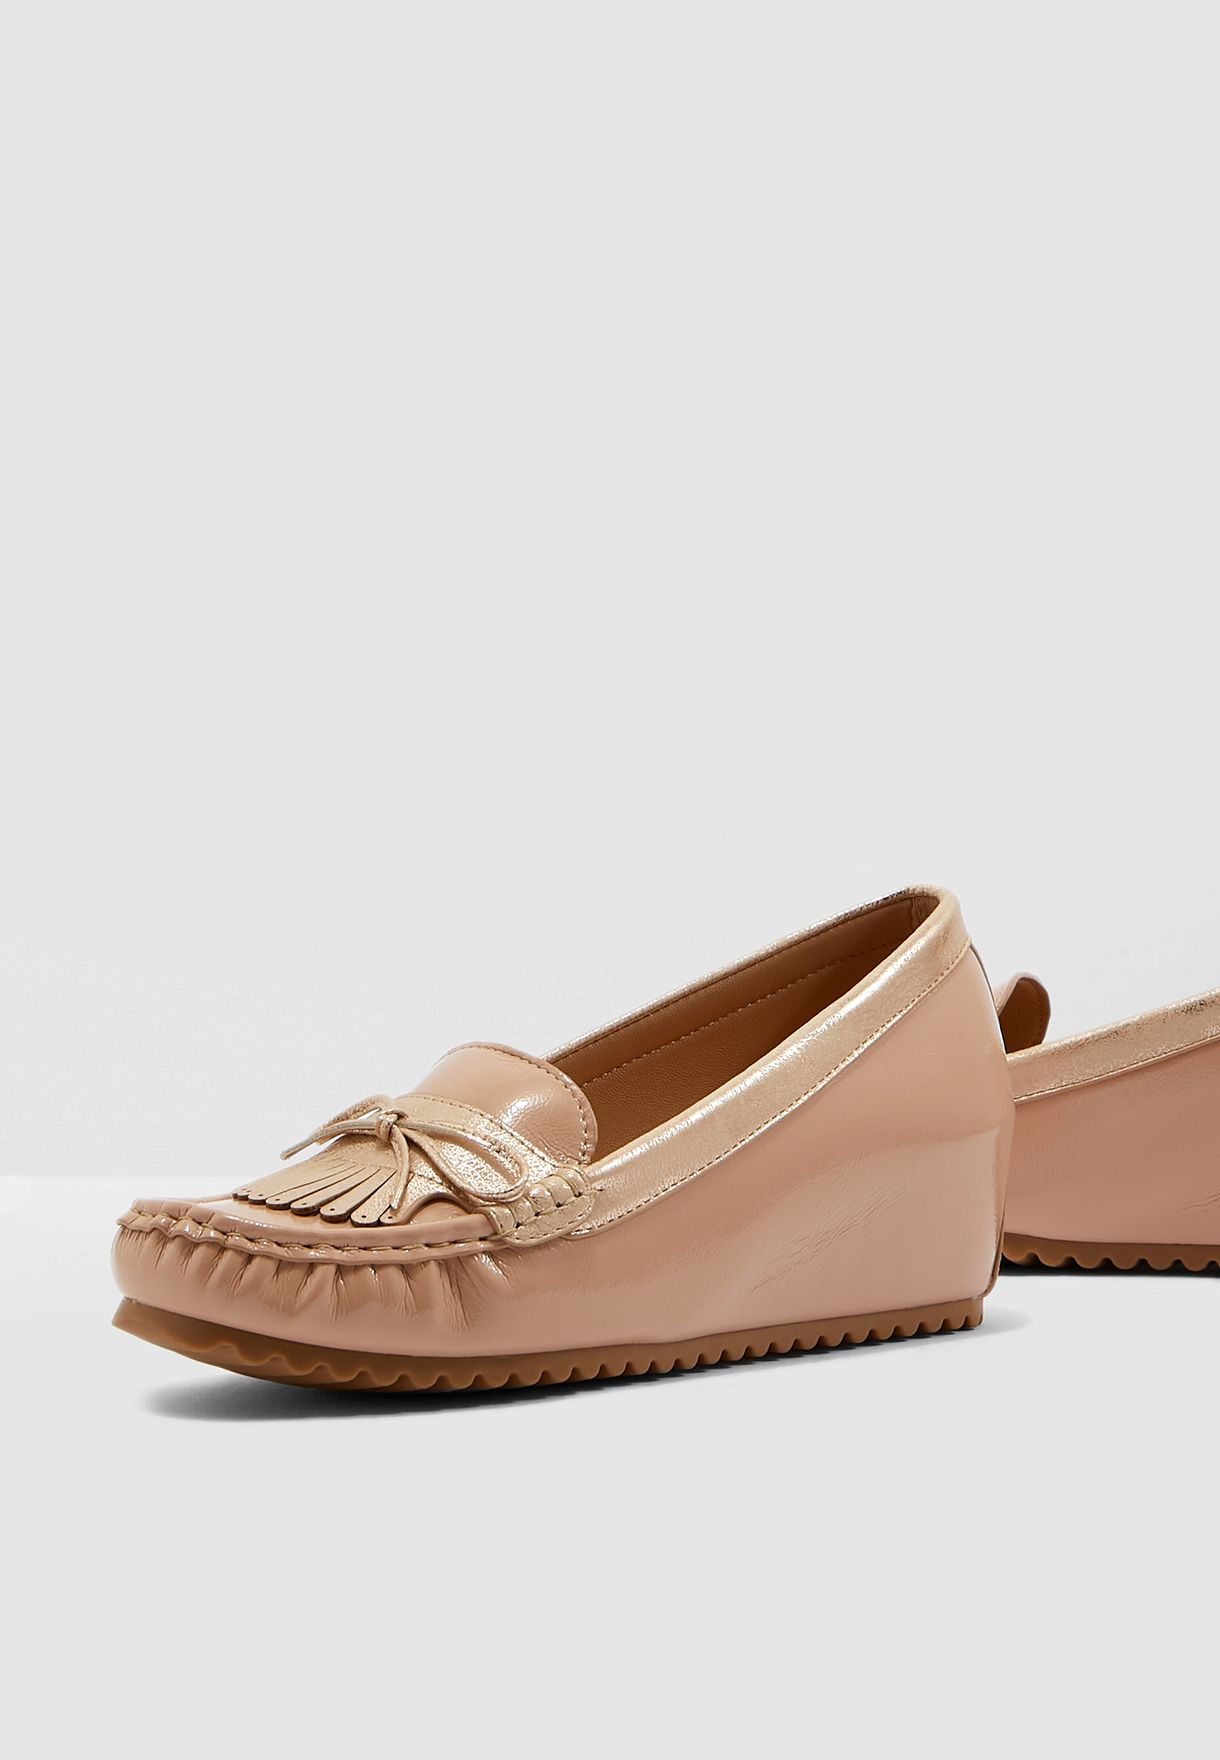 Knotted Moccasin - Nude